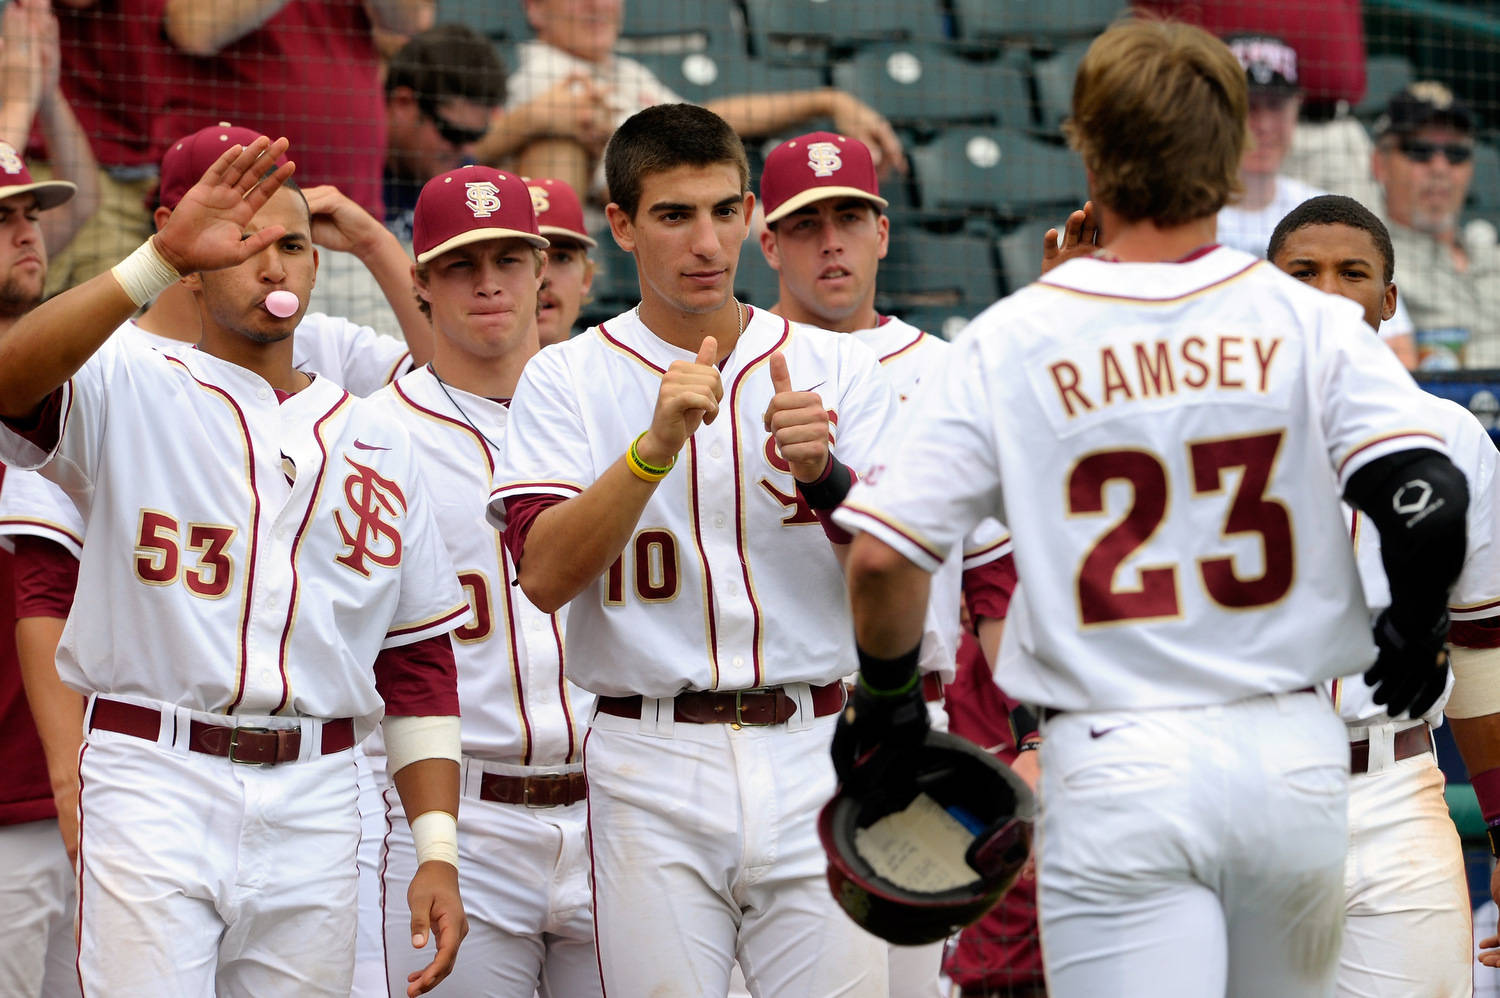 Florida State's James Ramsey (23) is congratulated on his homerun against Georgia Tech by his teammate during the ACC Baseball Championship May 23, 2012 in Greensboro, N.C. (Photo by Sara D. Davis/theACC.com)